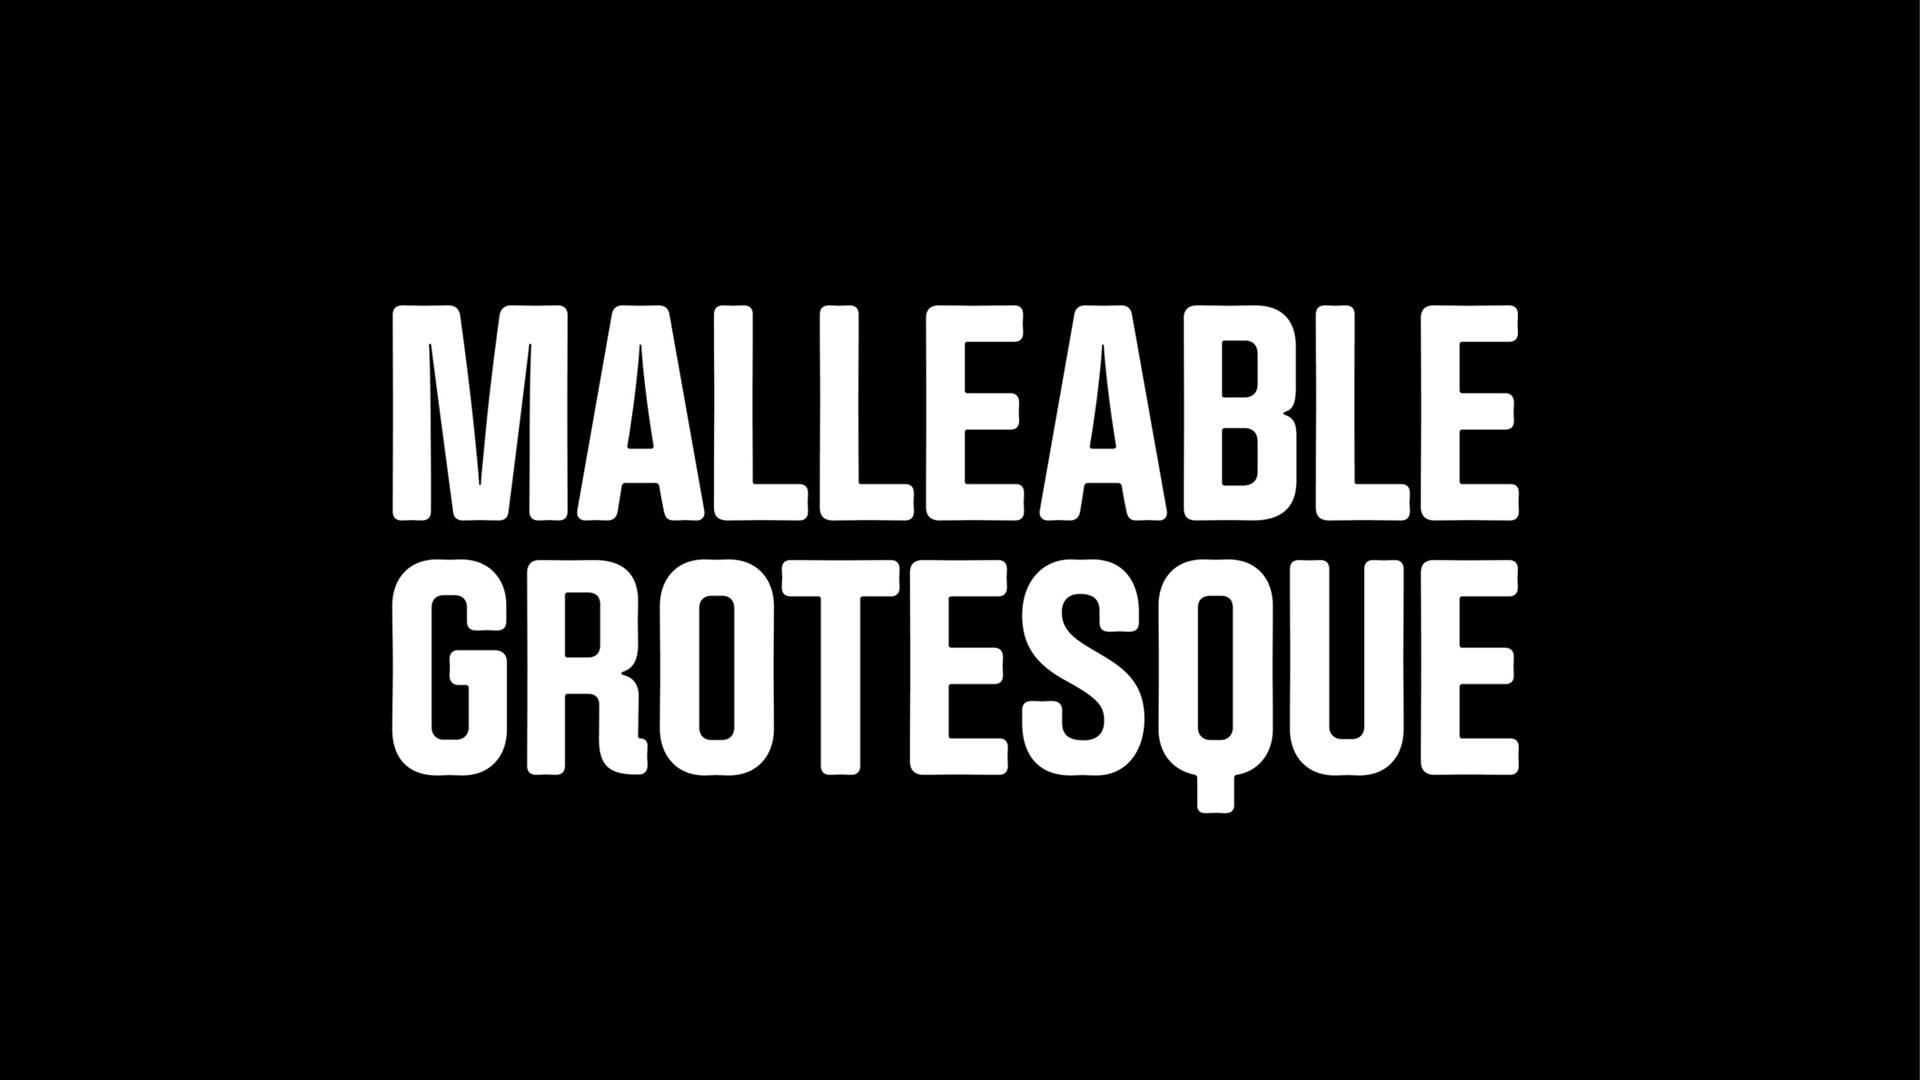 Malleable Grotesque - Font Family